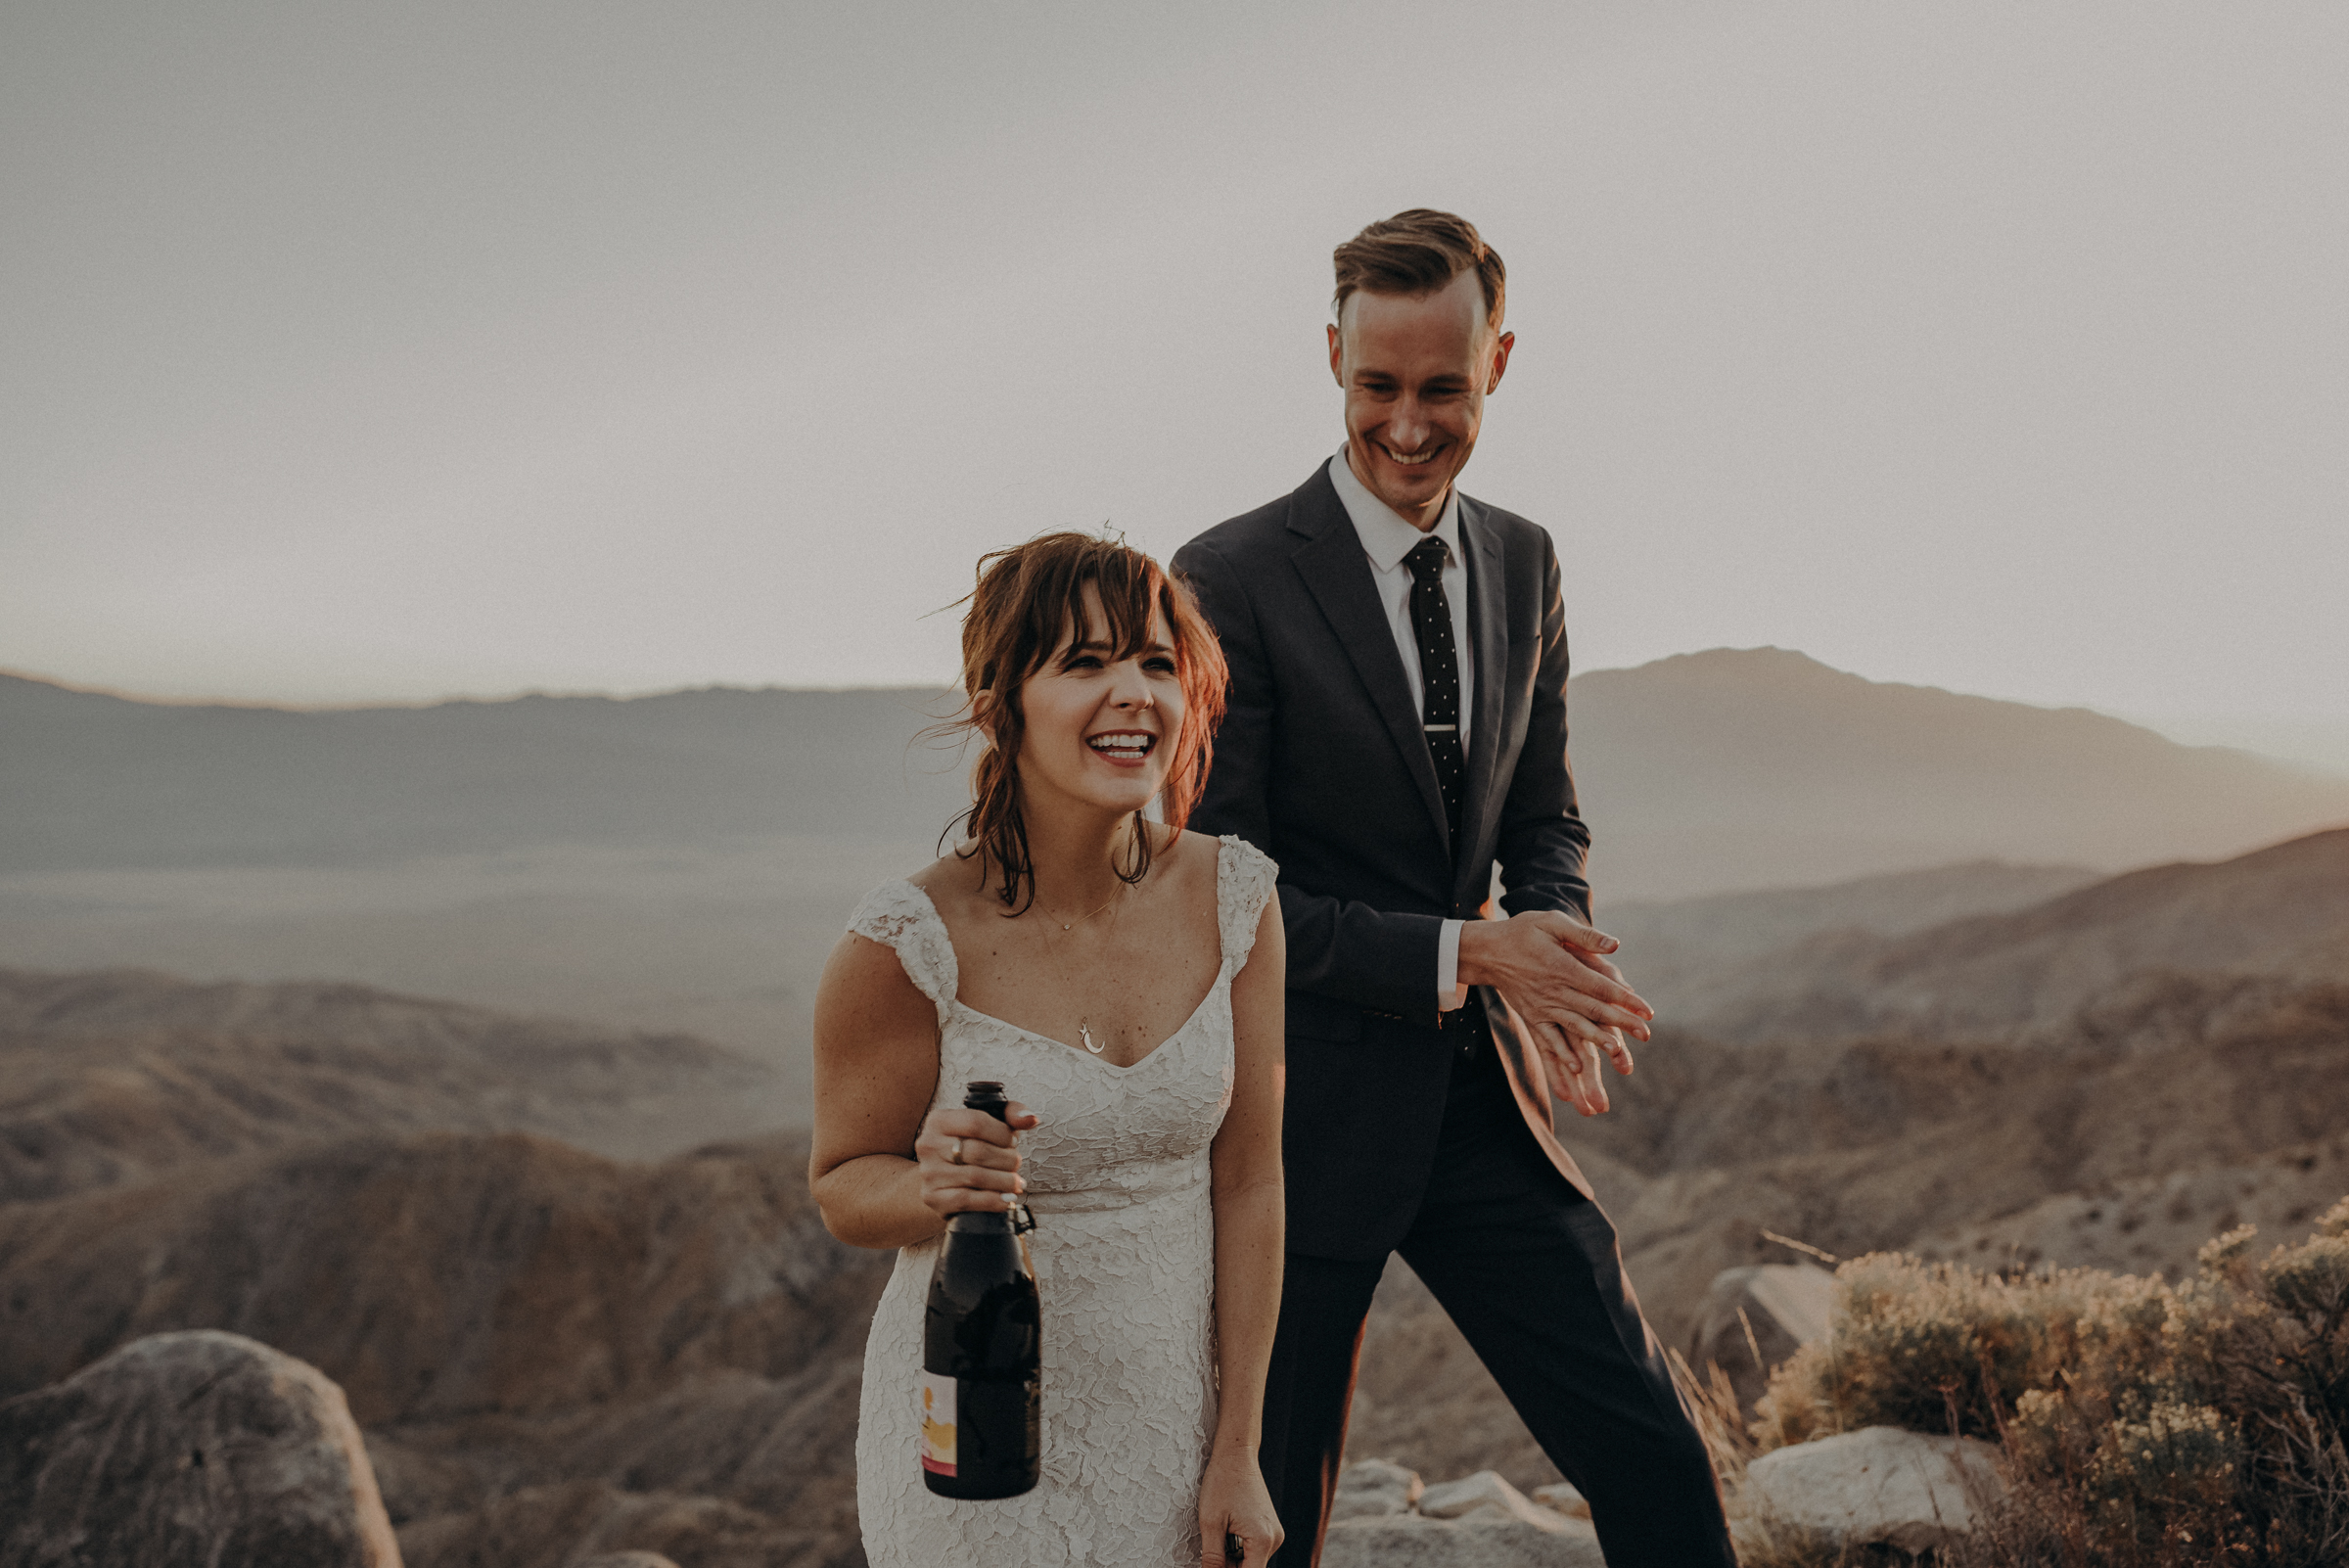 Joshua Tree Elopement - Los Angeles Wedding Photographers - IsaiahAndTaylor.com-120.jpg